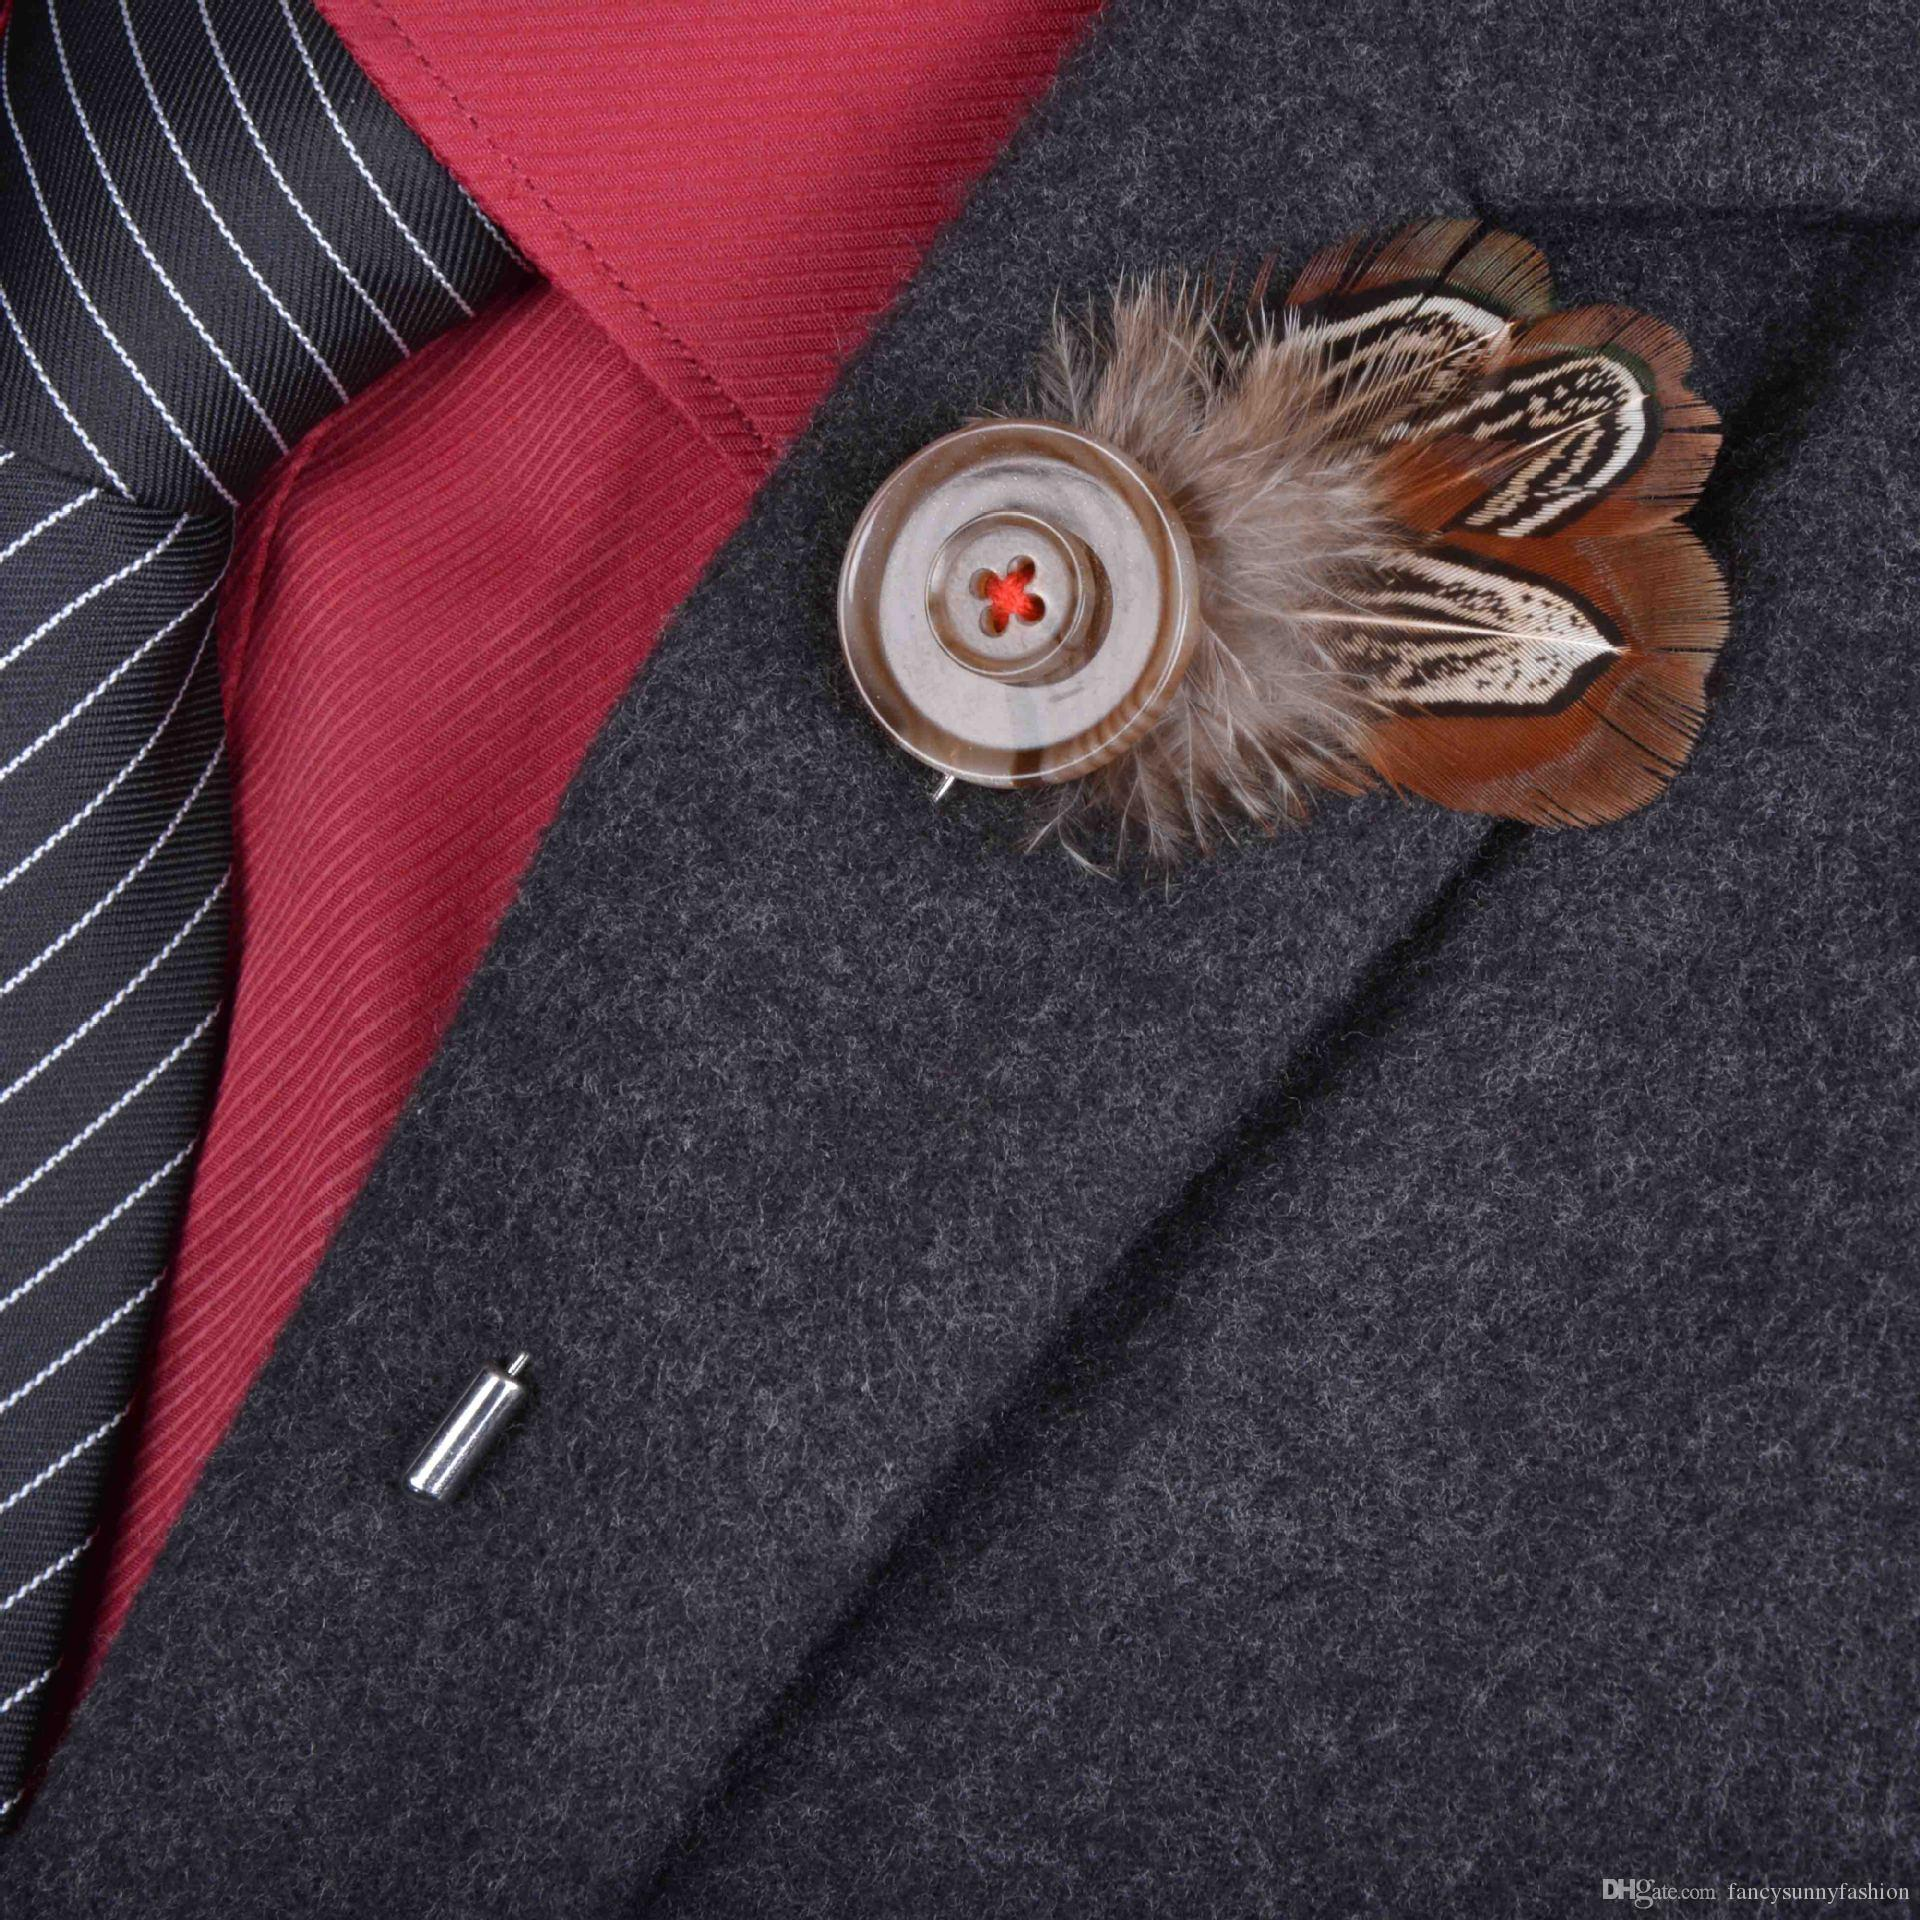 chic engagement flower boho elegant lapel suit boutonniere wedding gift mens pin brooch him for